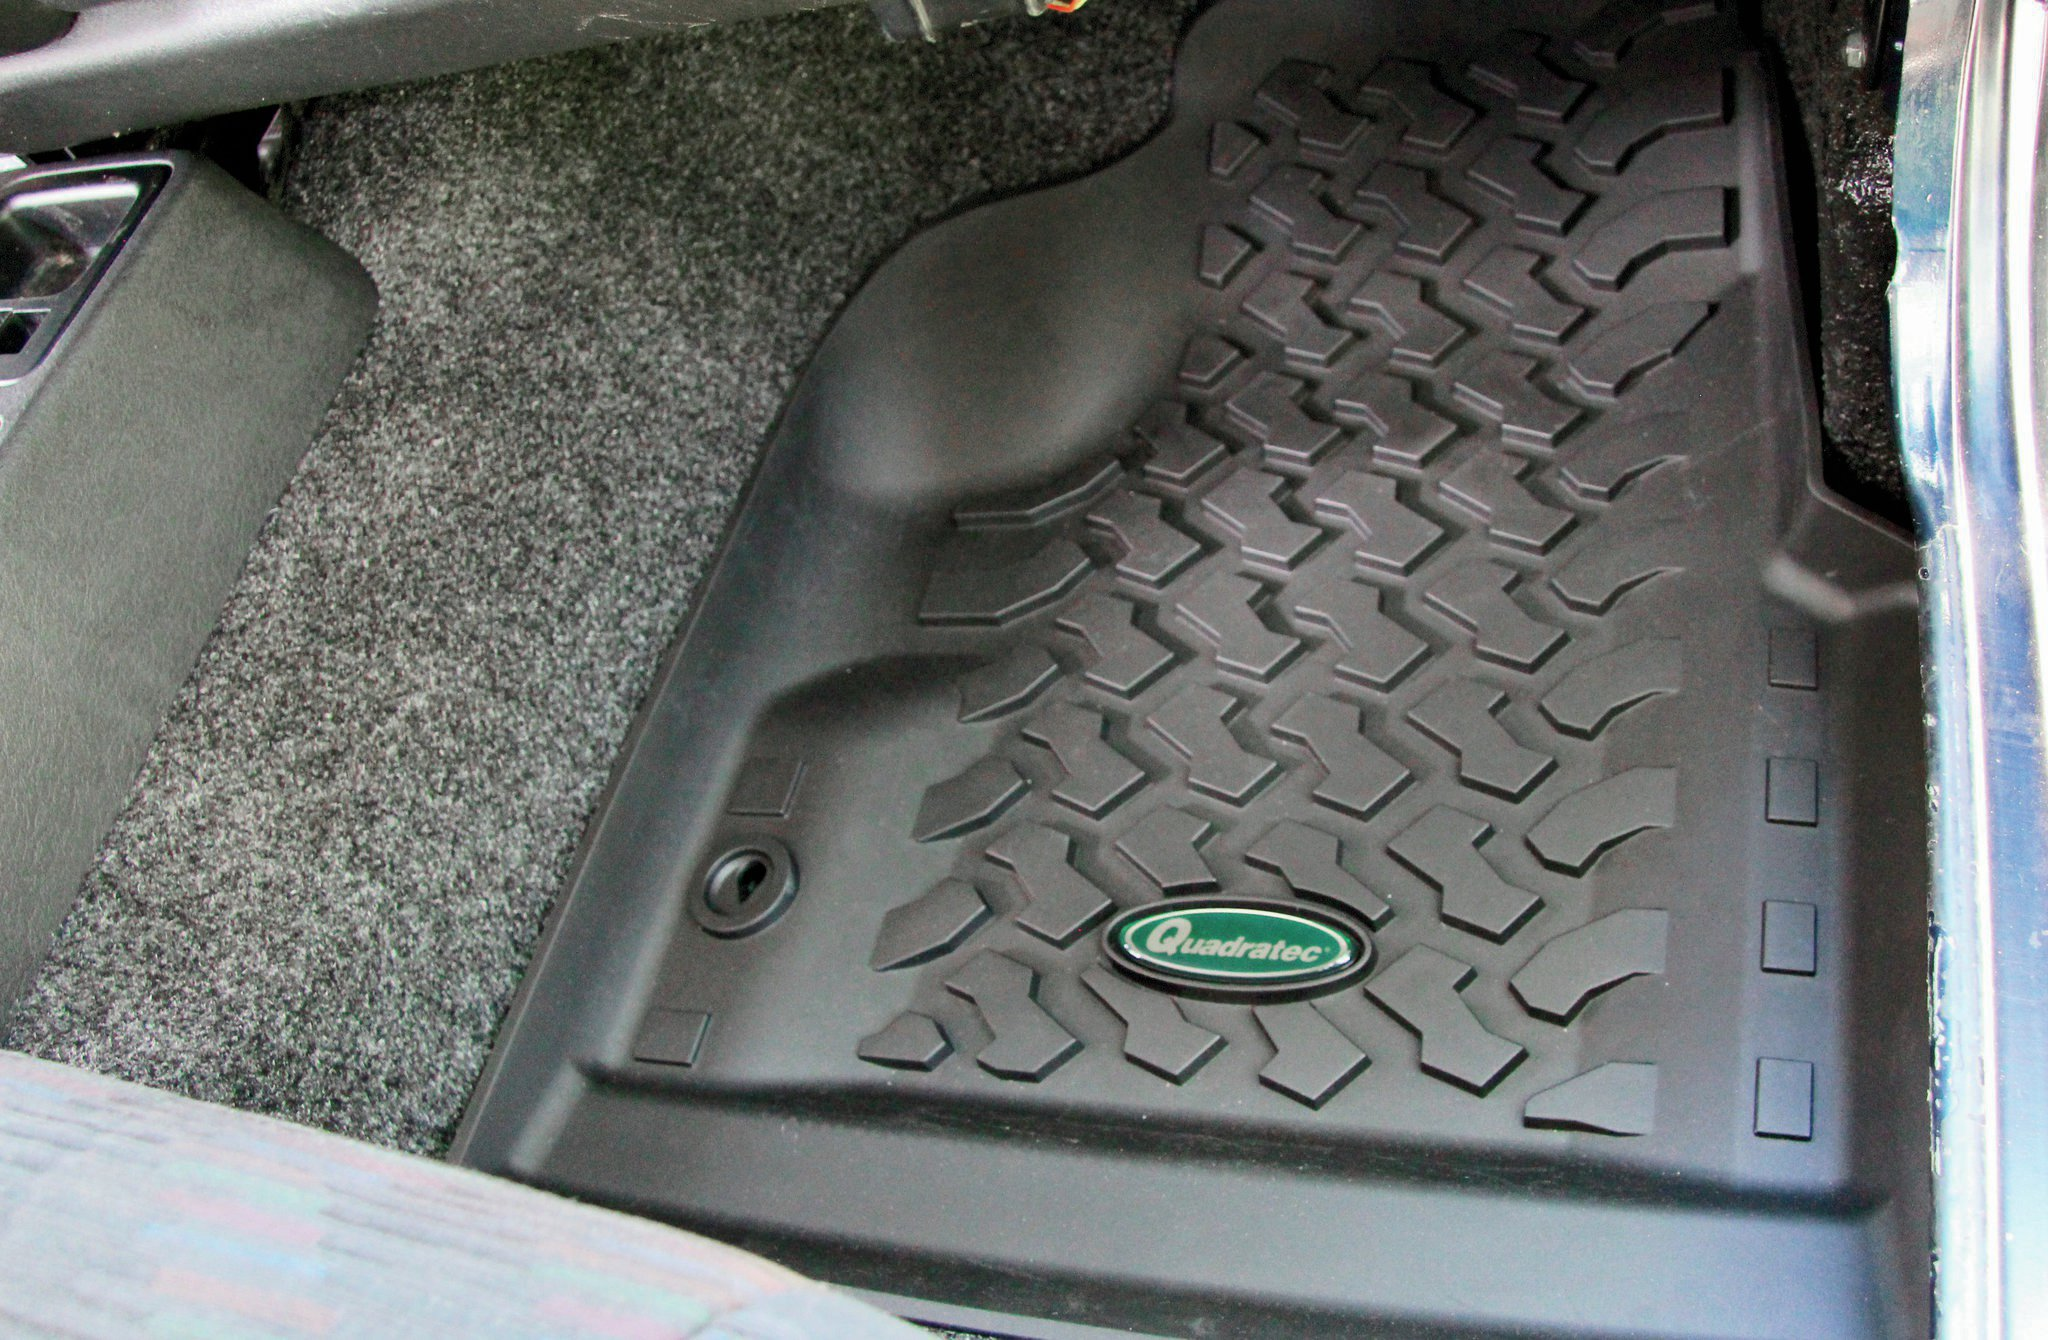 While the BedRug is designed to handle the elements with ease, a set of floor liners are a lot easier to hose off after a day in the trail. We picked up these form-molded liners from Quadratec. Like the BedRug, the Quadratec liners are formed specifically for the Wrangler's tub. Another plus: The liners are made in the USA!